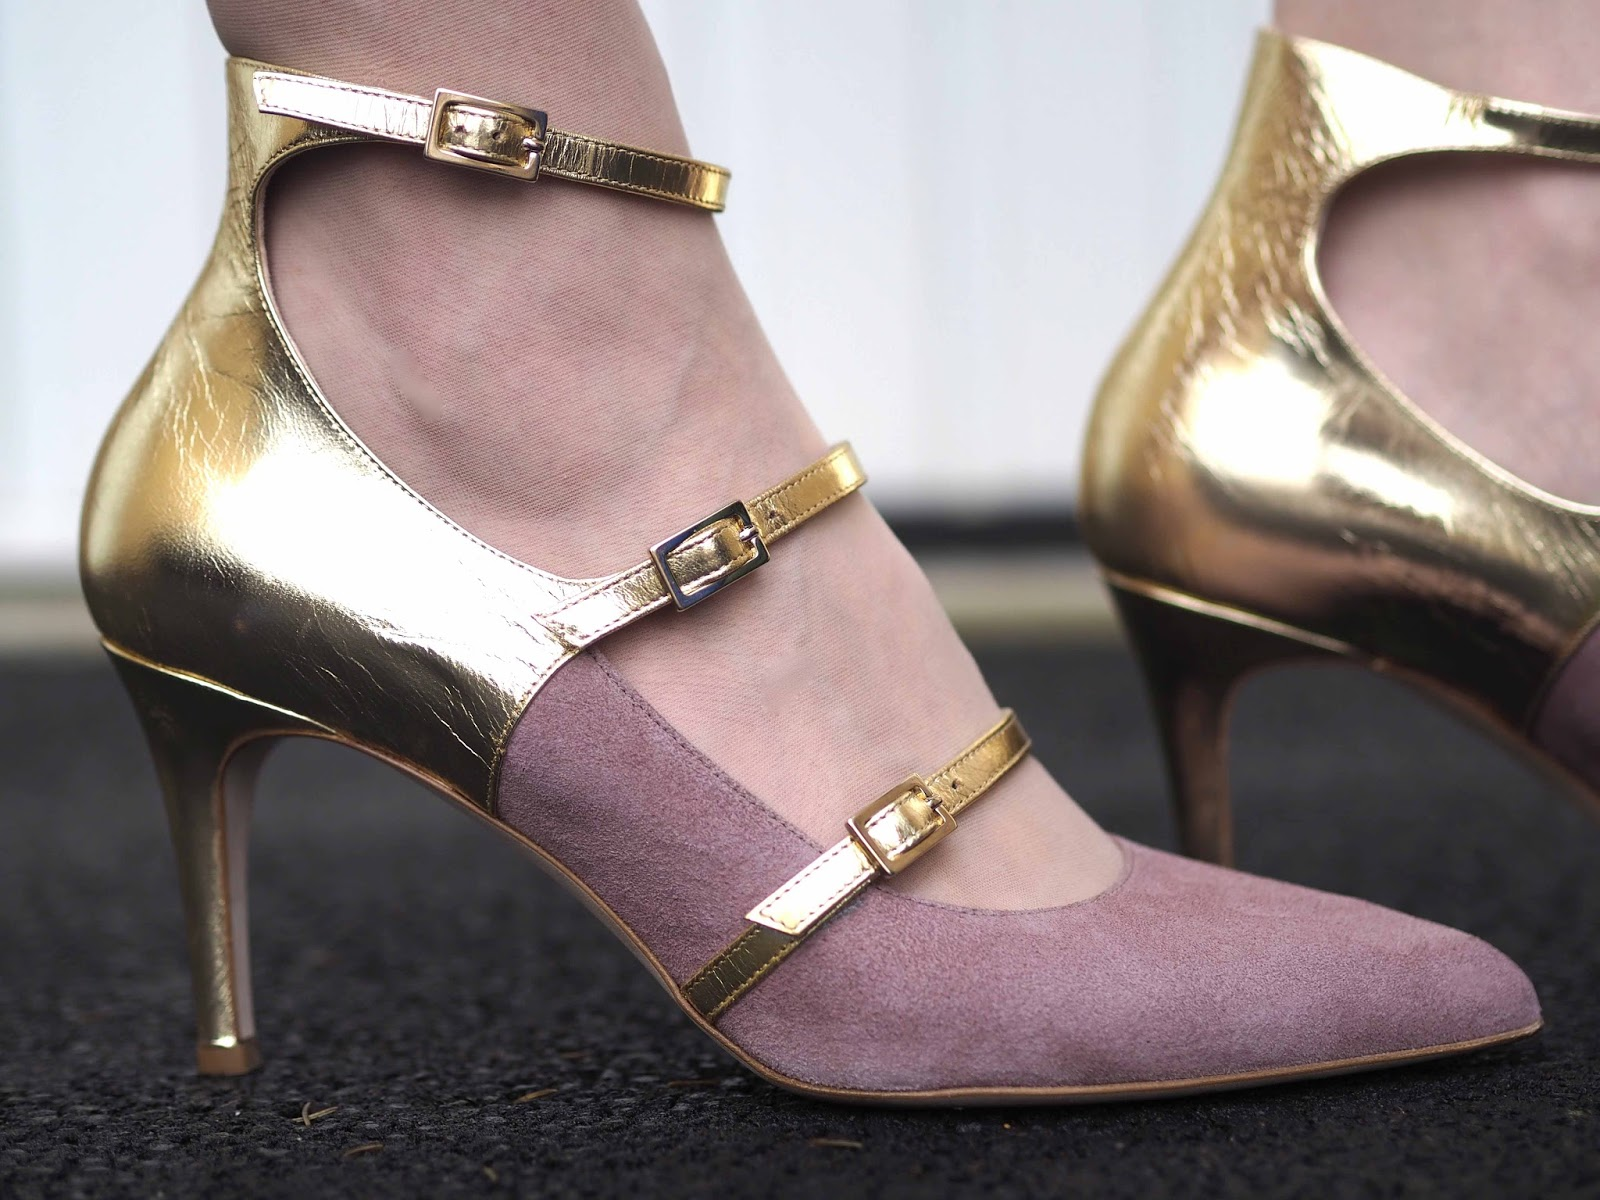 Roccamore blush suede and gold leather strappy high-heeled shoes